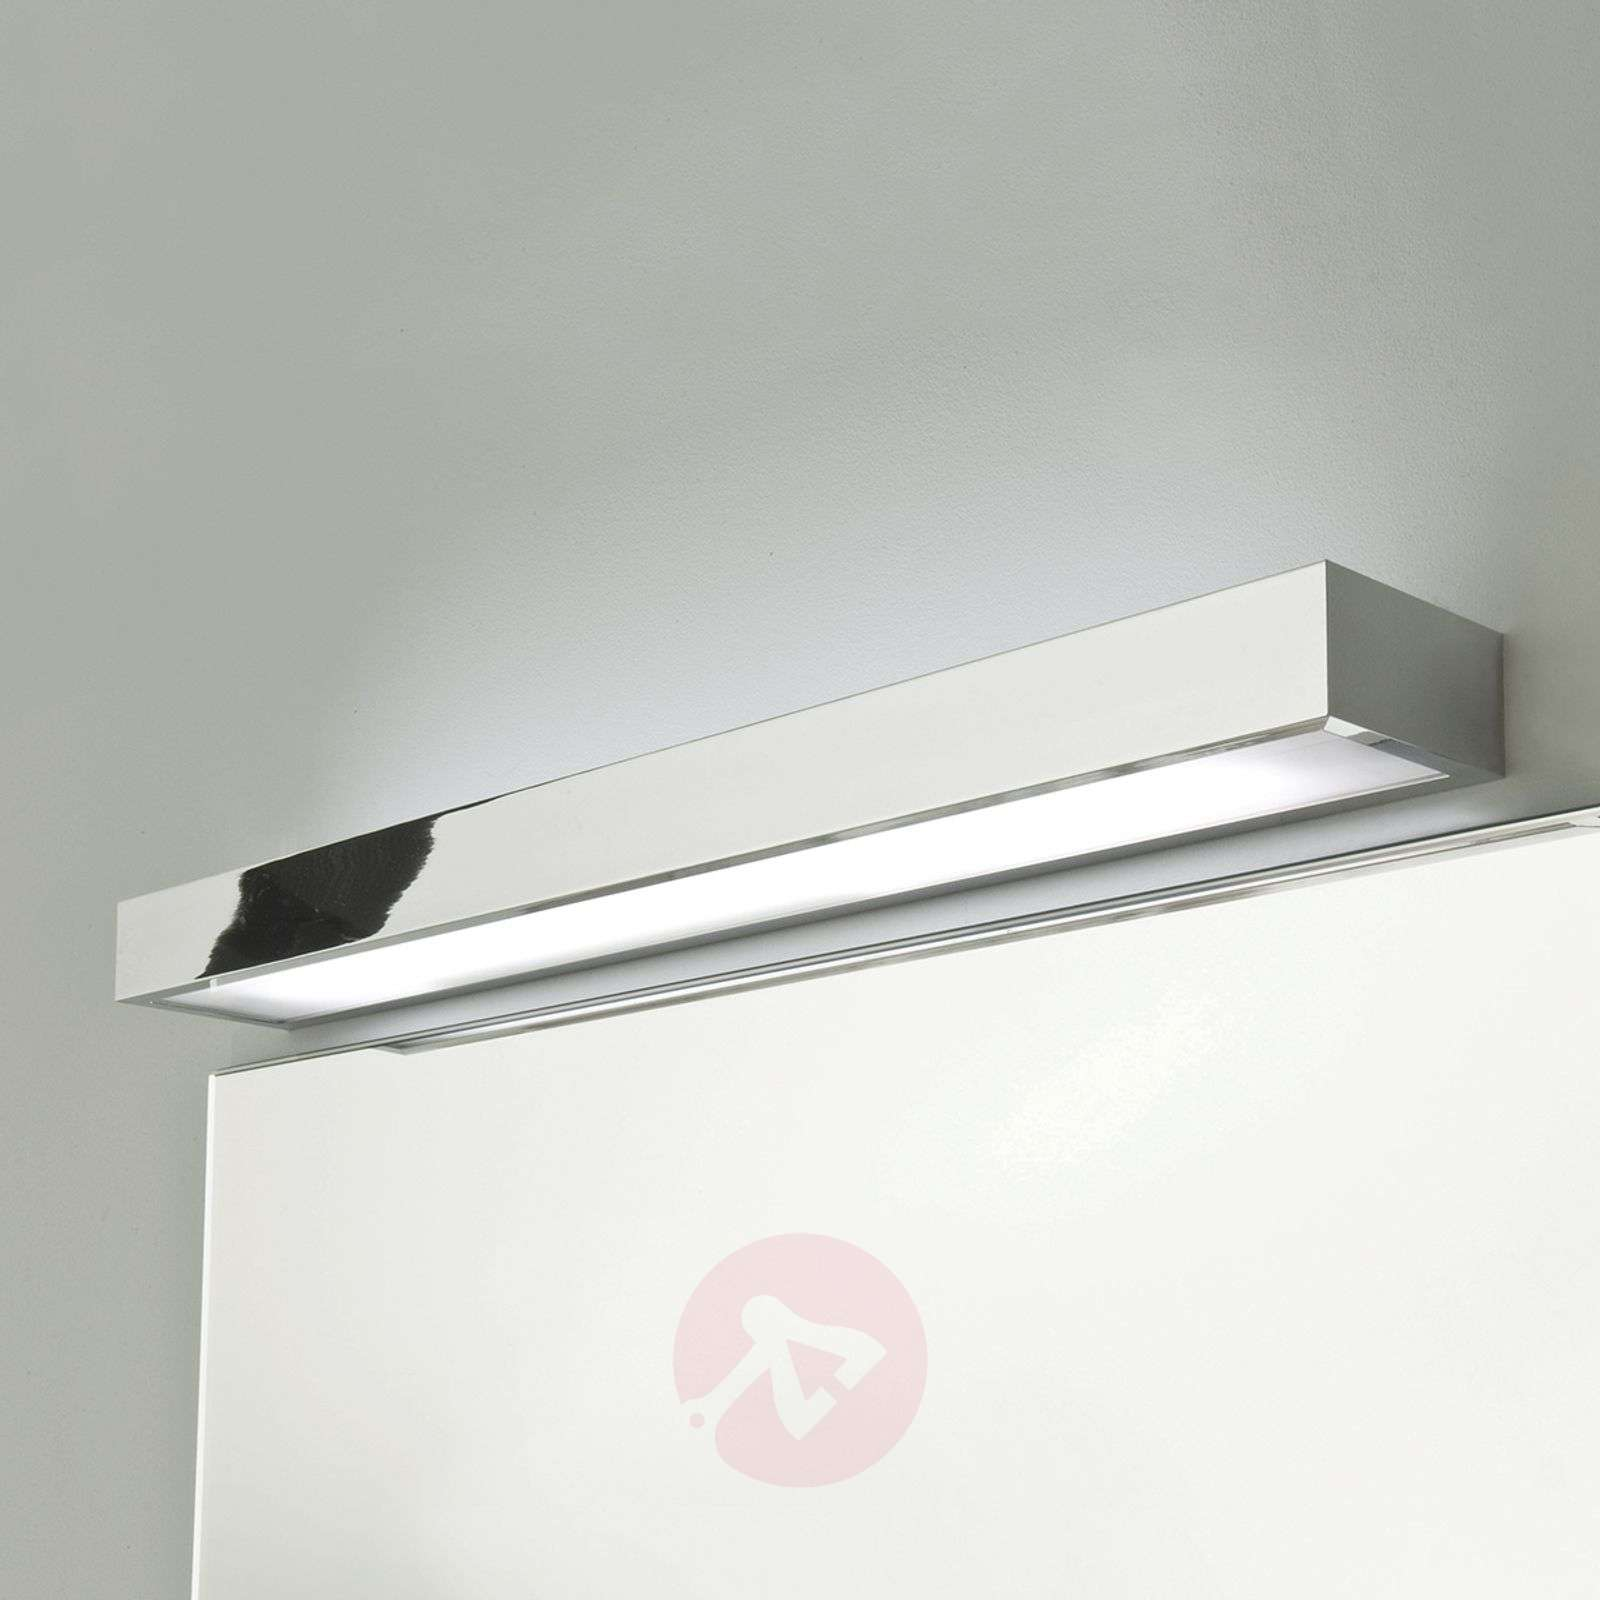 Lámpara de pared en cromo TALLIN IP44 60 cm-1020031-02